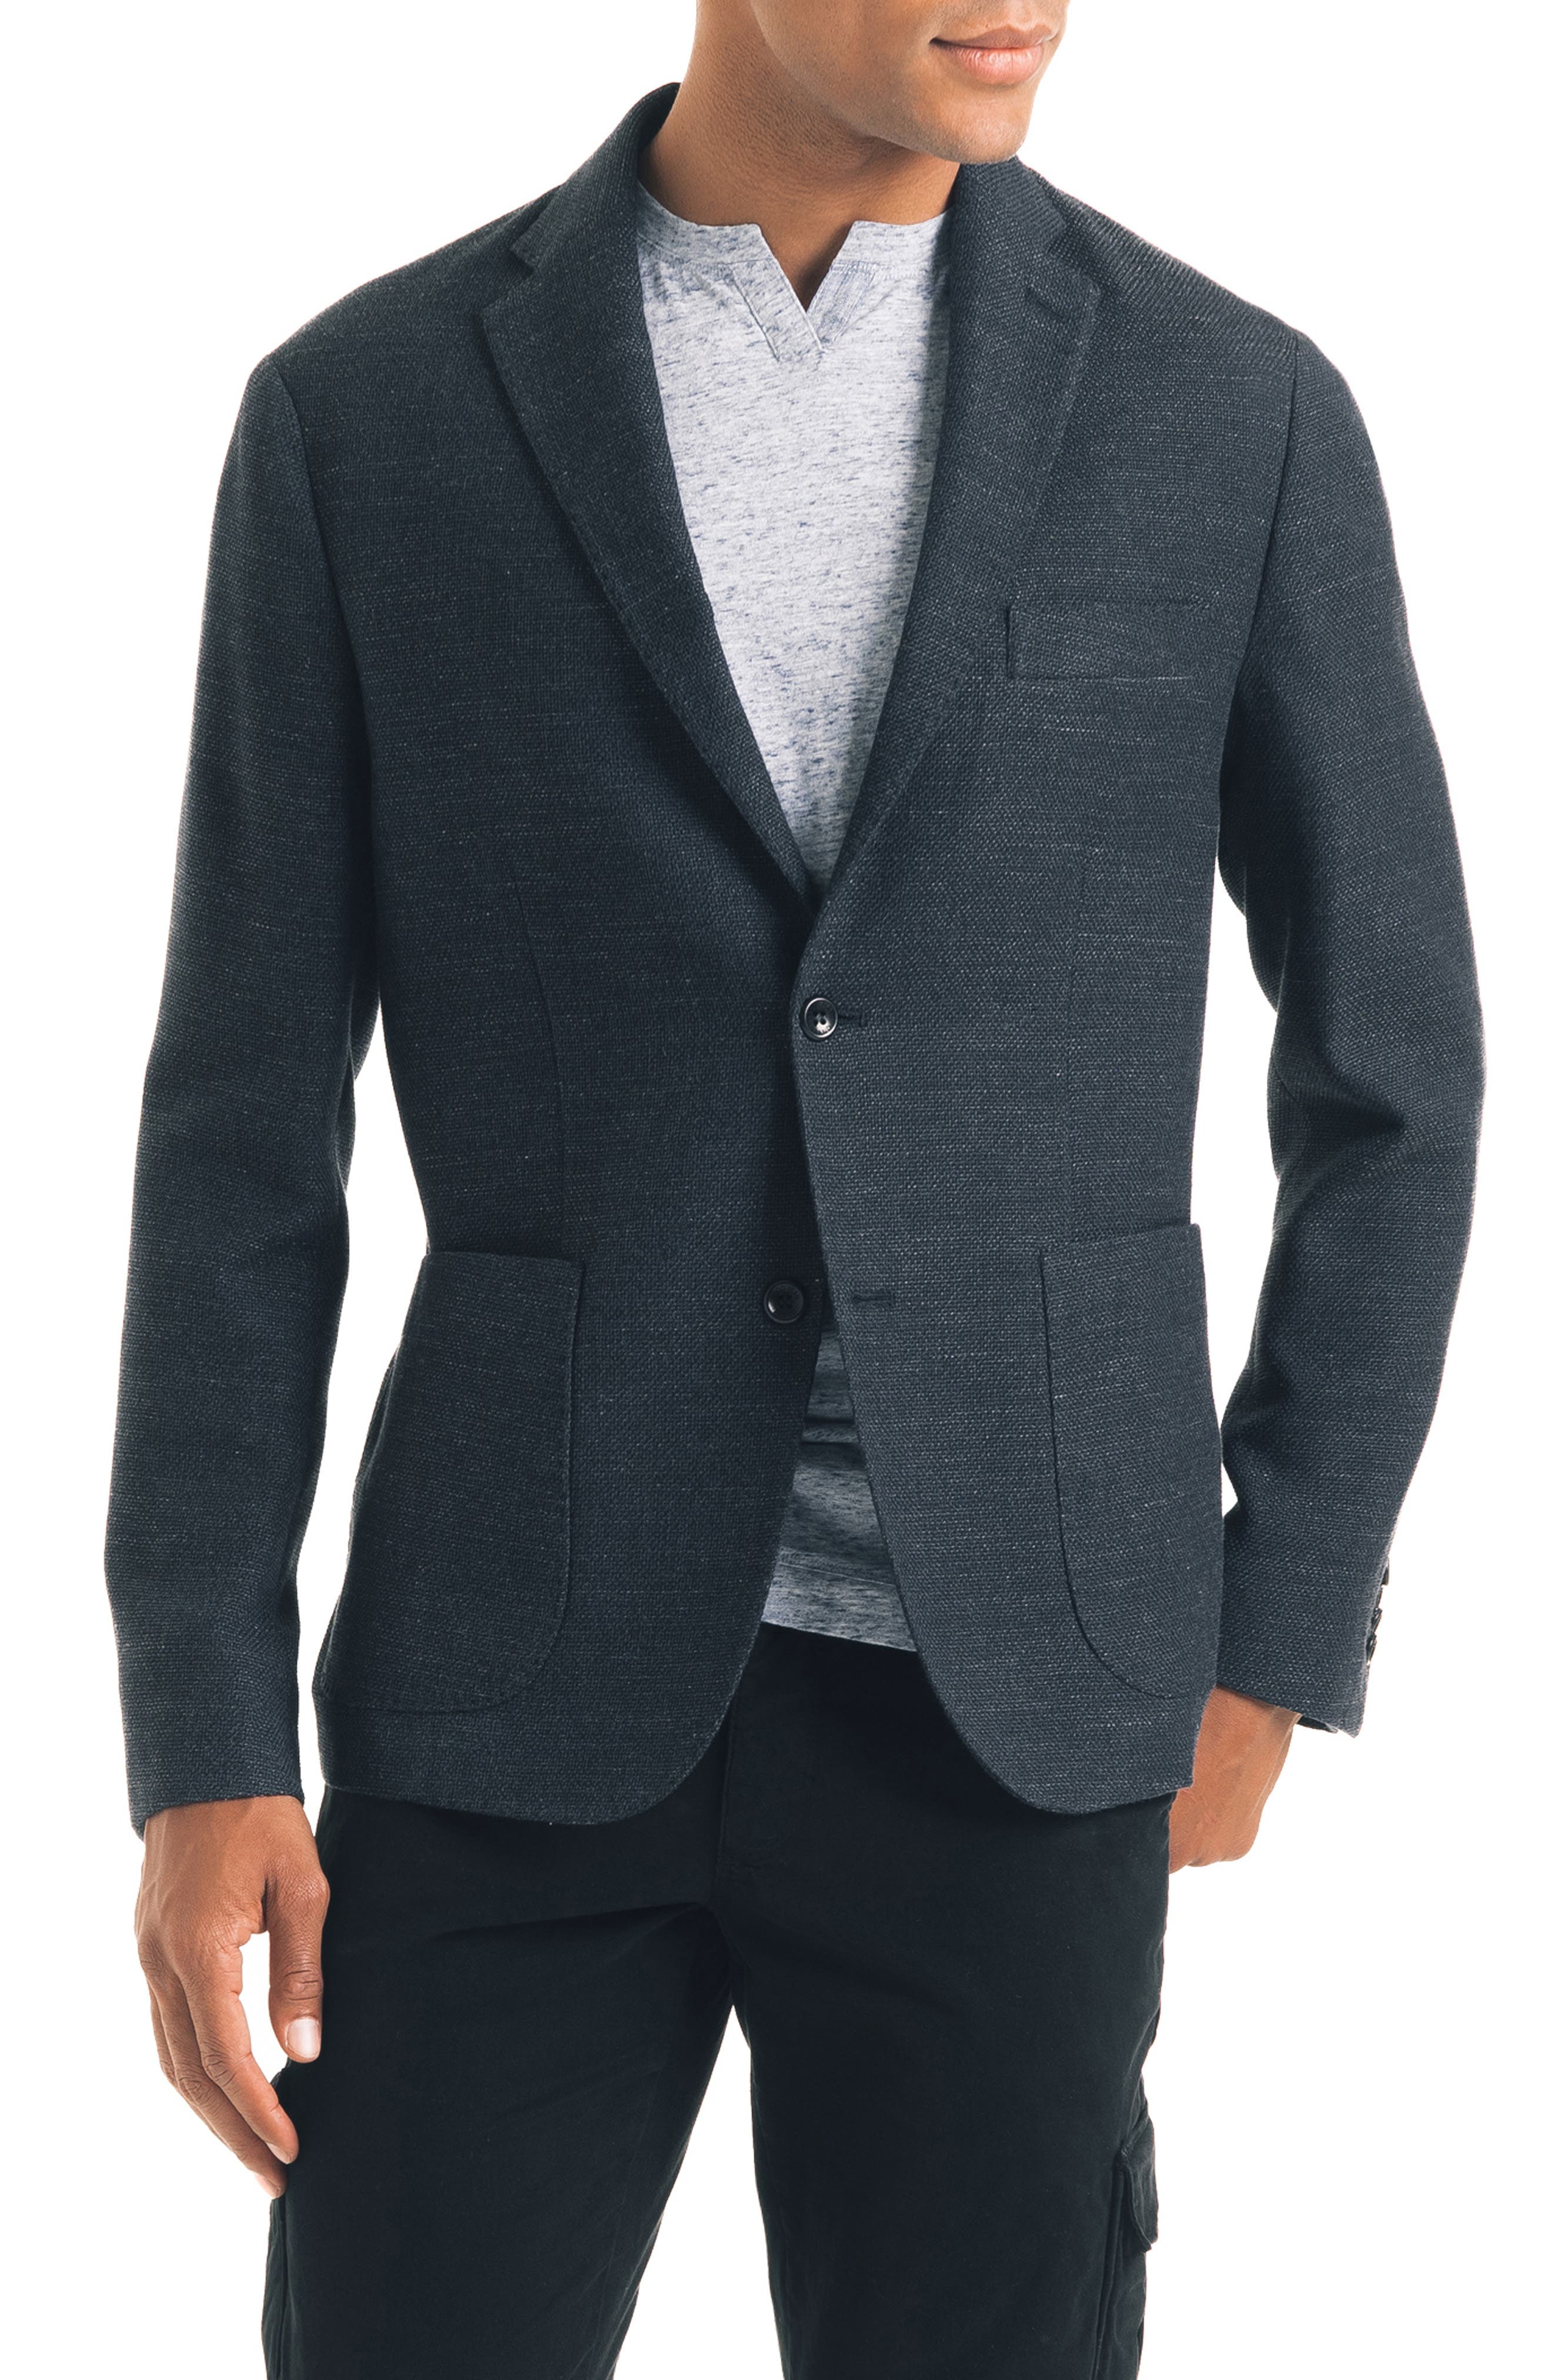 GOOD MAN BRAND Slim Fit Soft Sport Coat in Charcoal